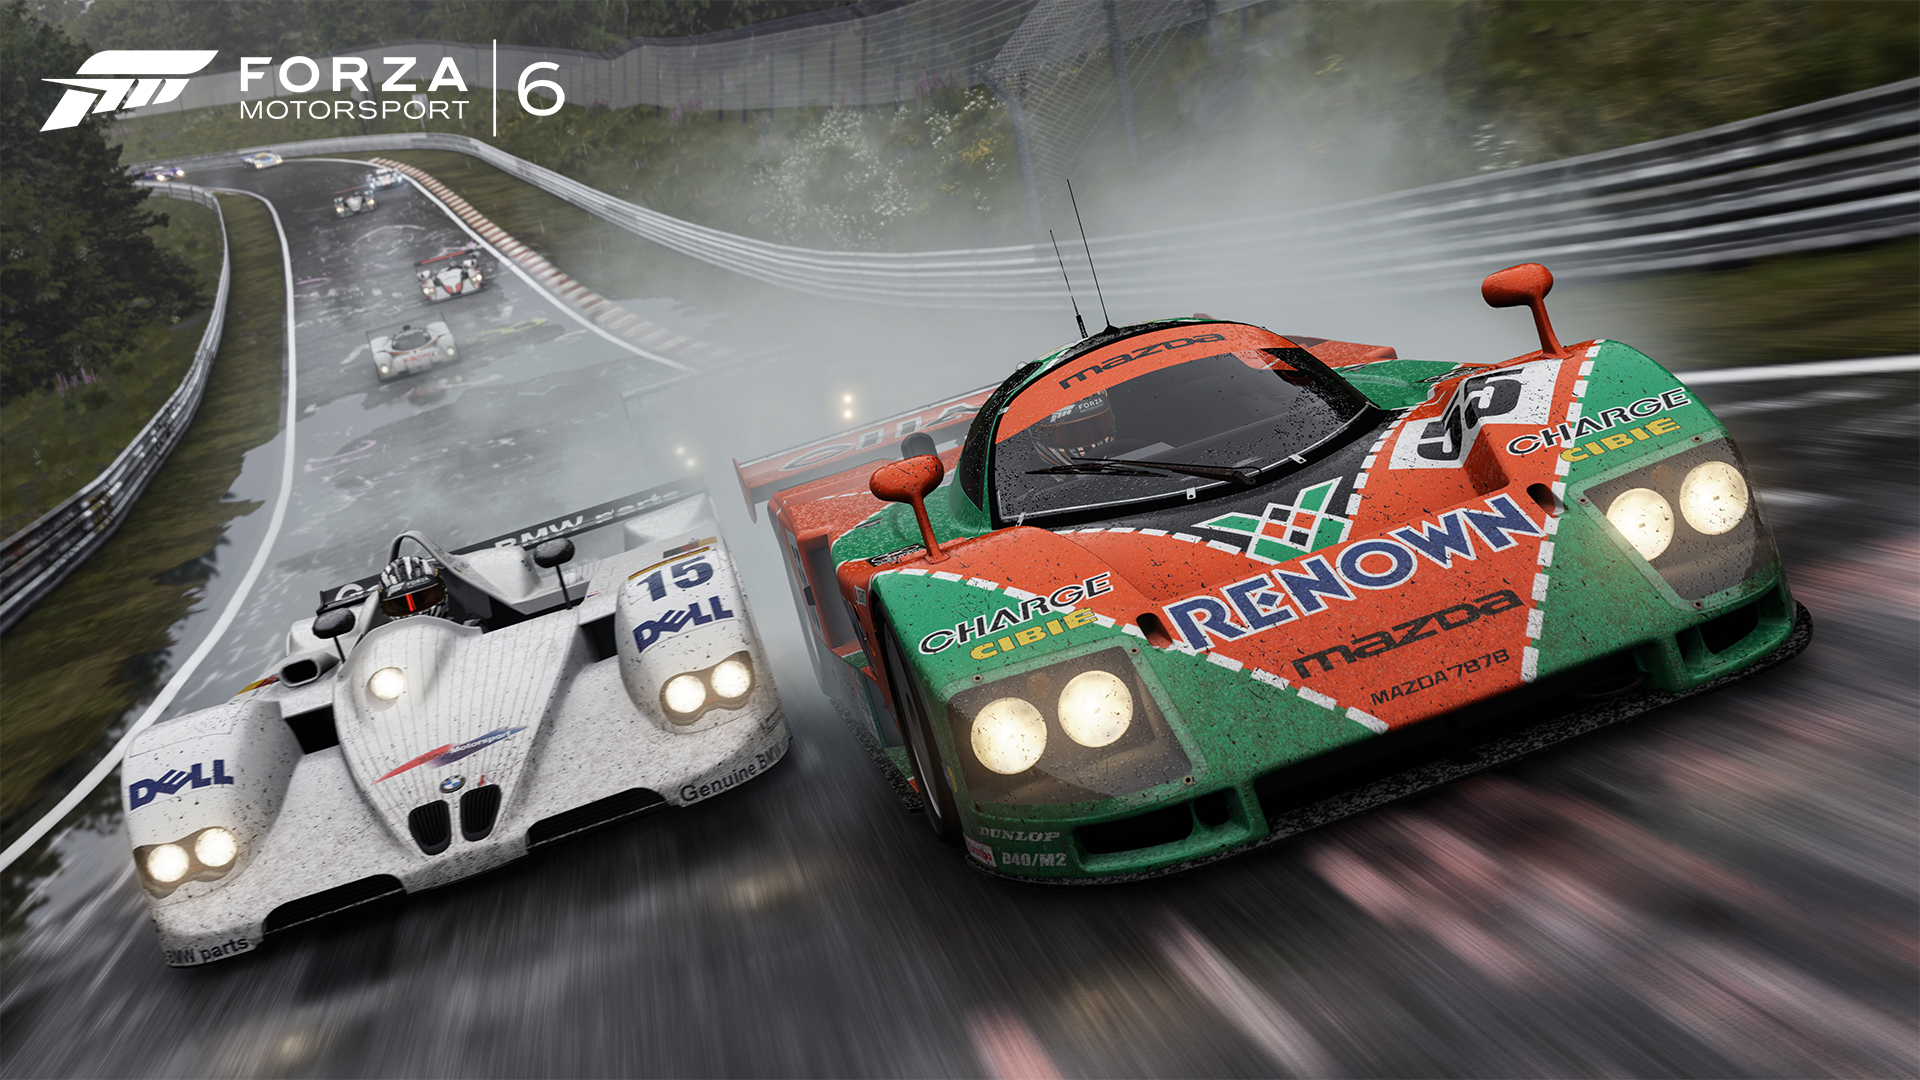 Forza Horizon 3 and Forza Motorsport 6 rumoured for PC release